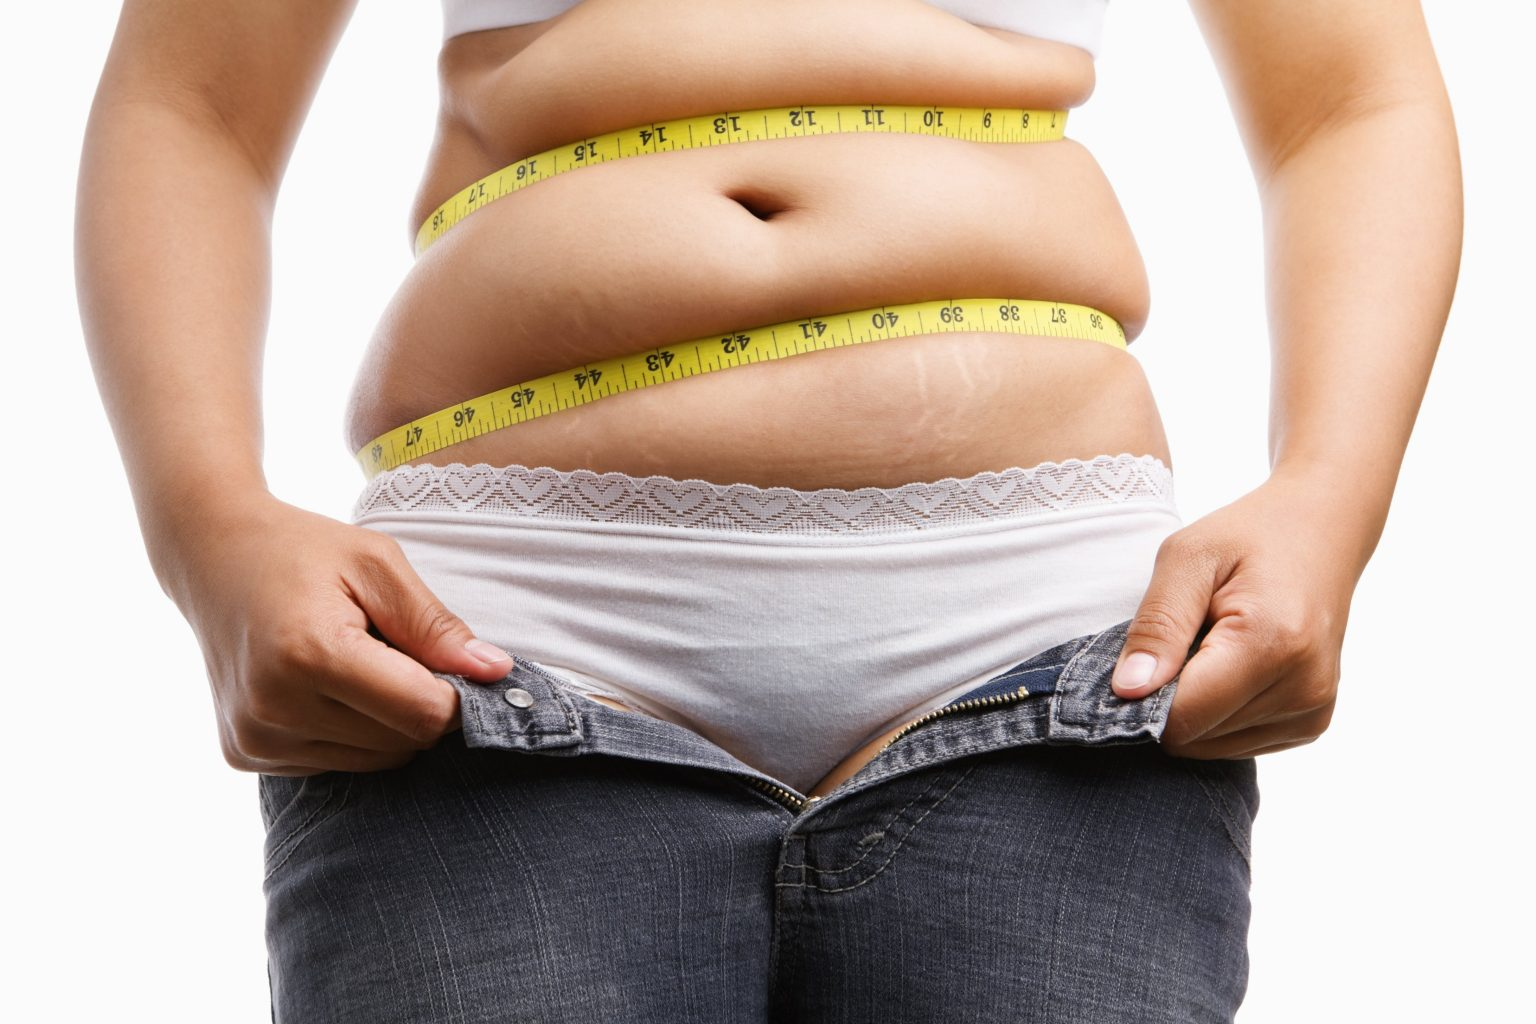 Obesity, Weight Loss, CBD Research, Cannabinoids, Lose Weight, Compare CBD Products